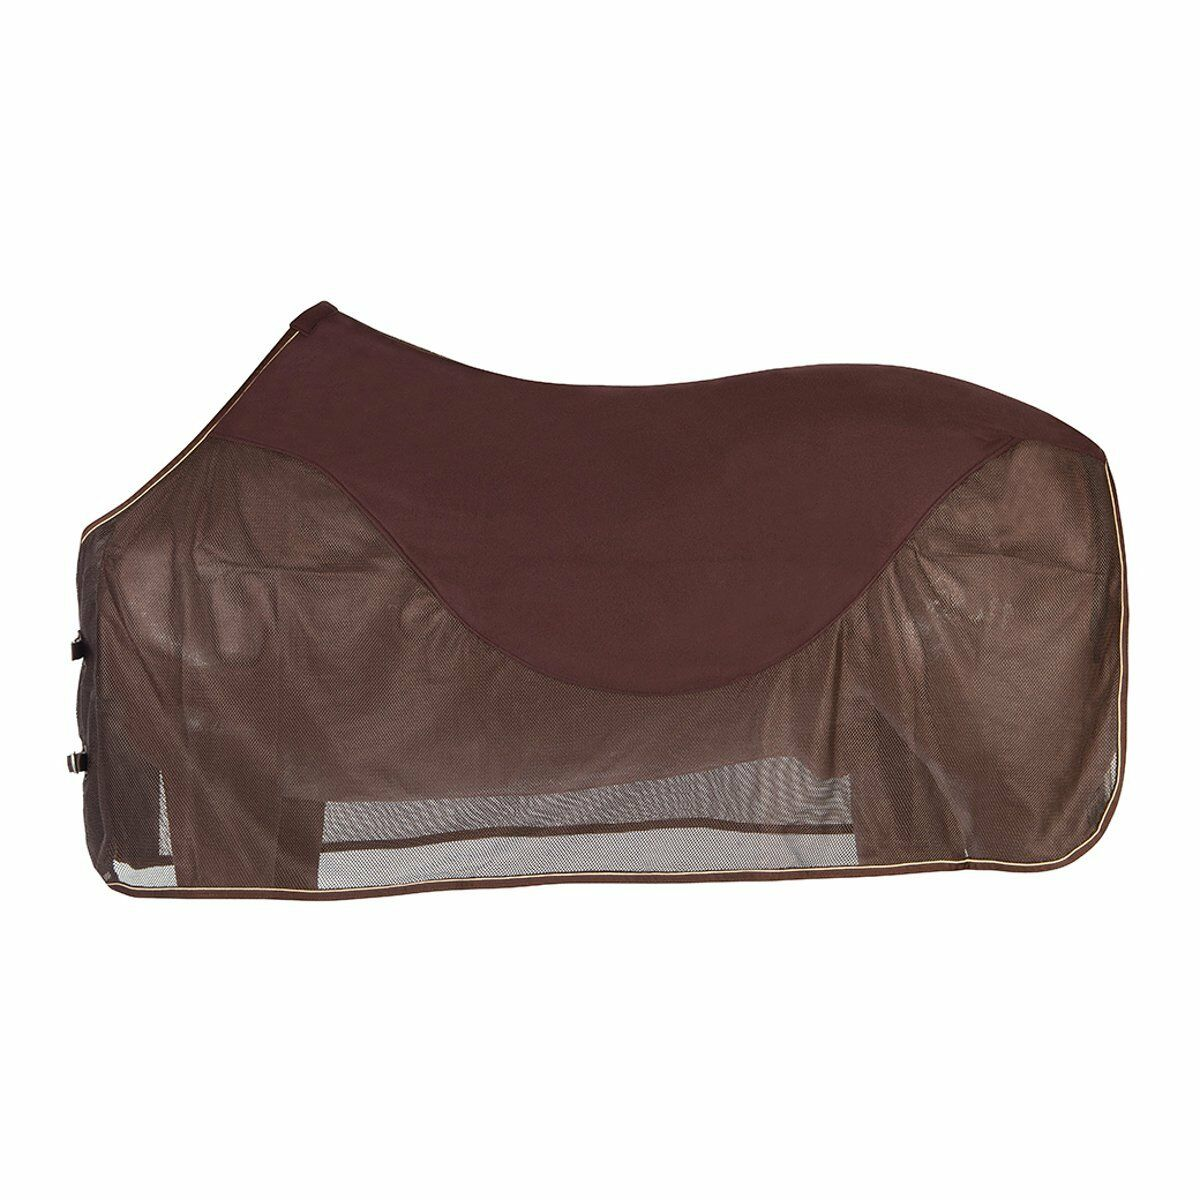 Pfiff Fly Sheet with Fleece Insert - Brown - 155 cm Fly Blanket Horse Blanket